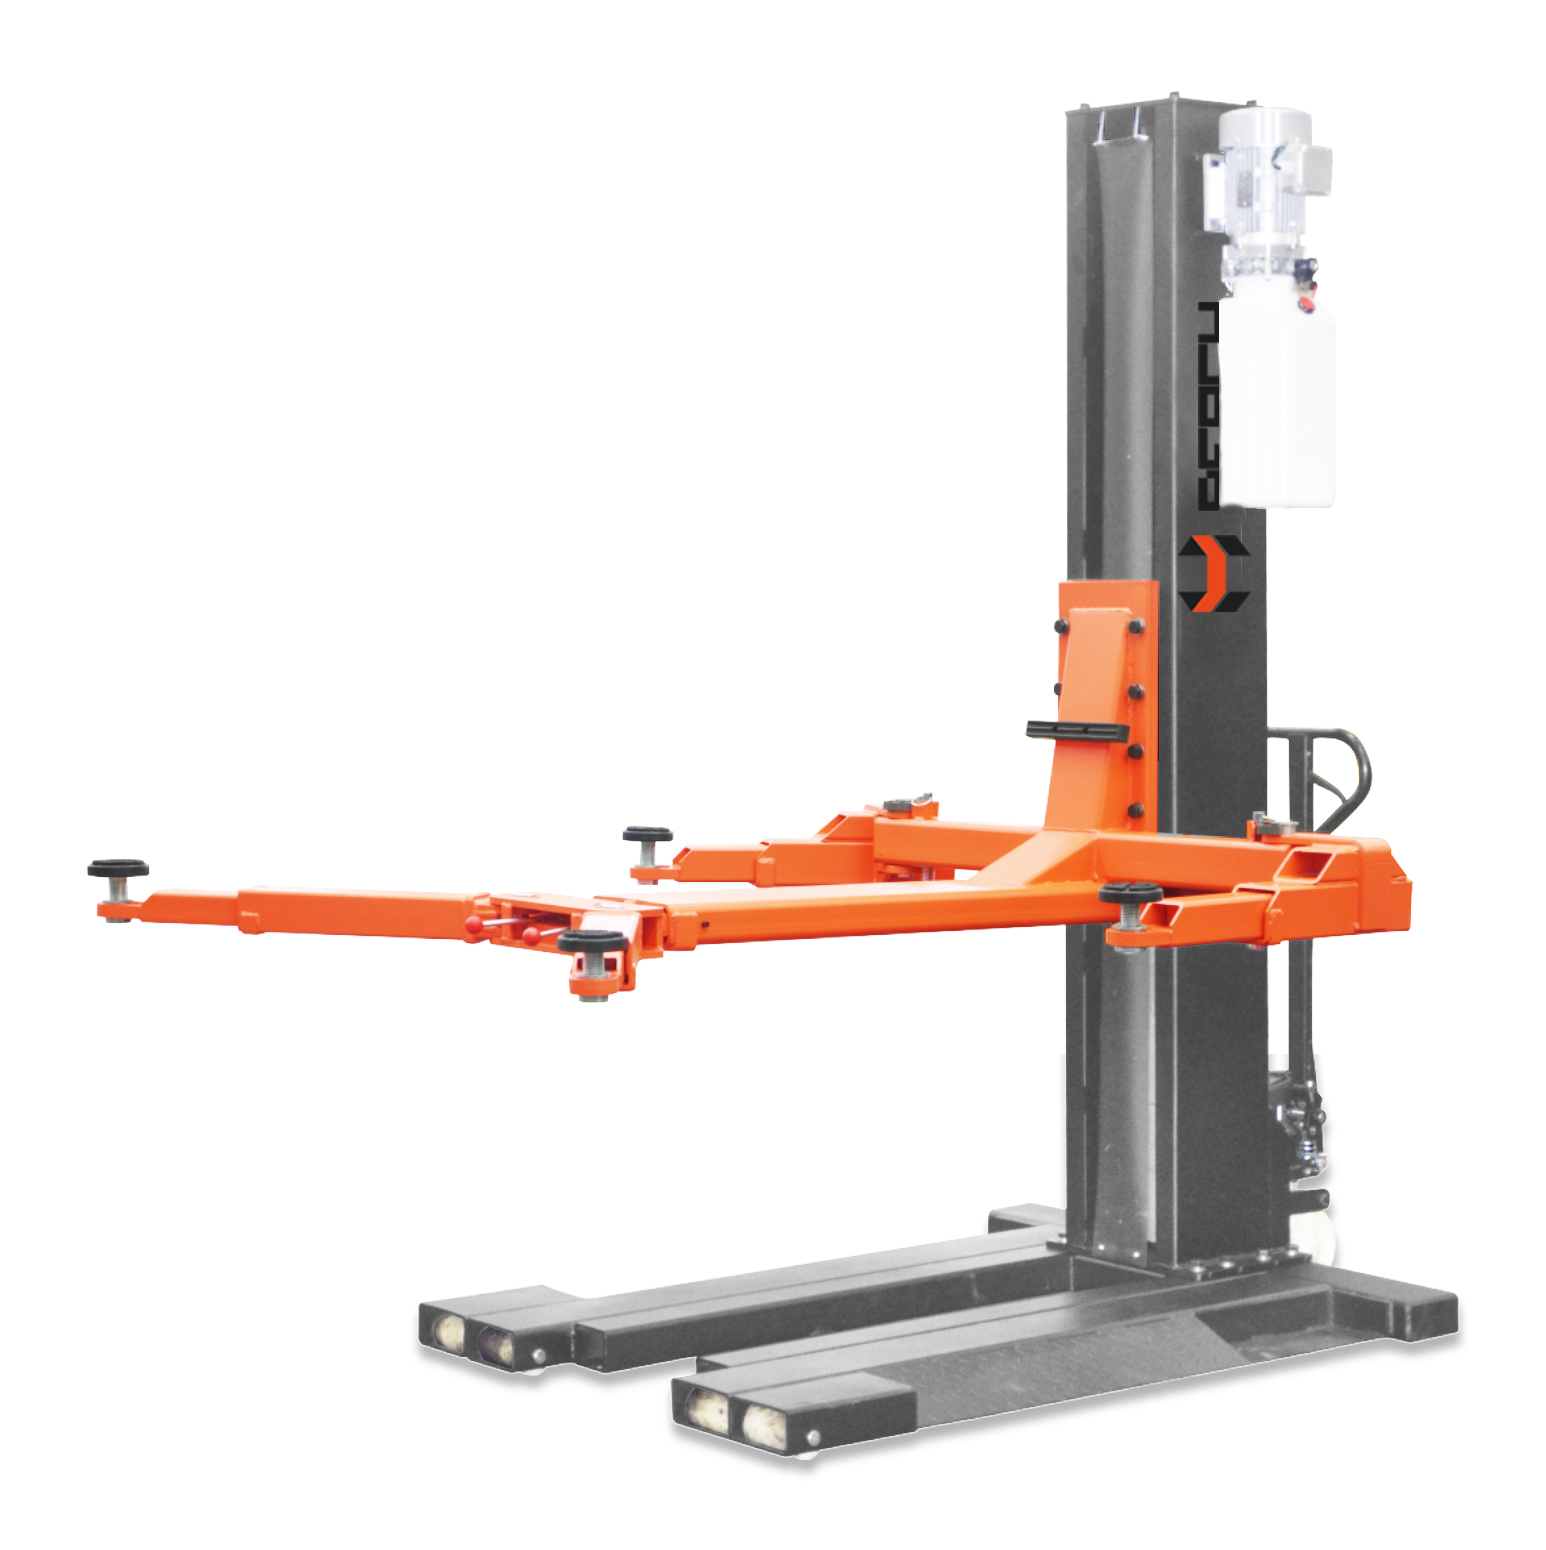 Direct Factory Price Hydraulic Single Column Car Lift Featured Image